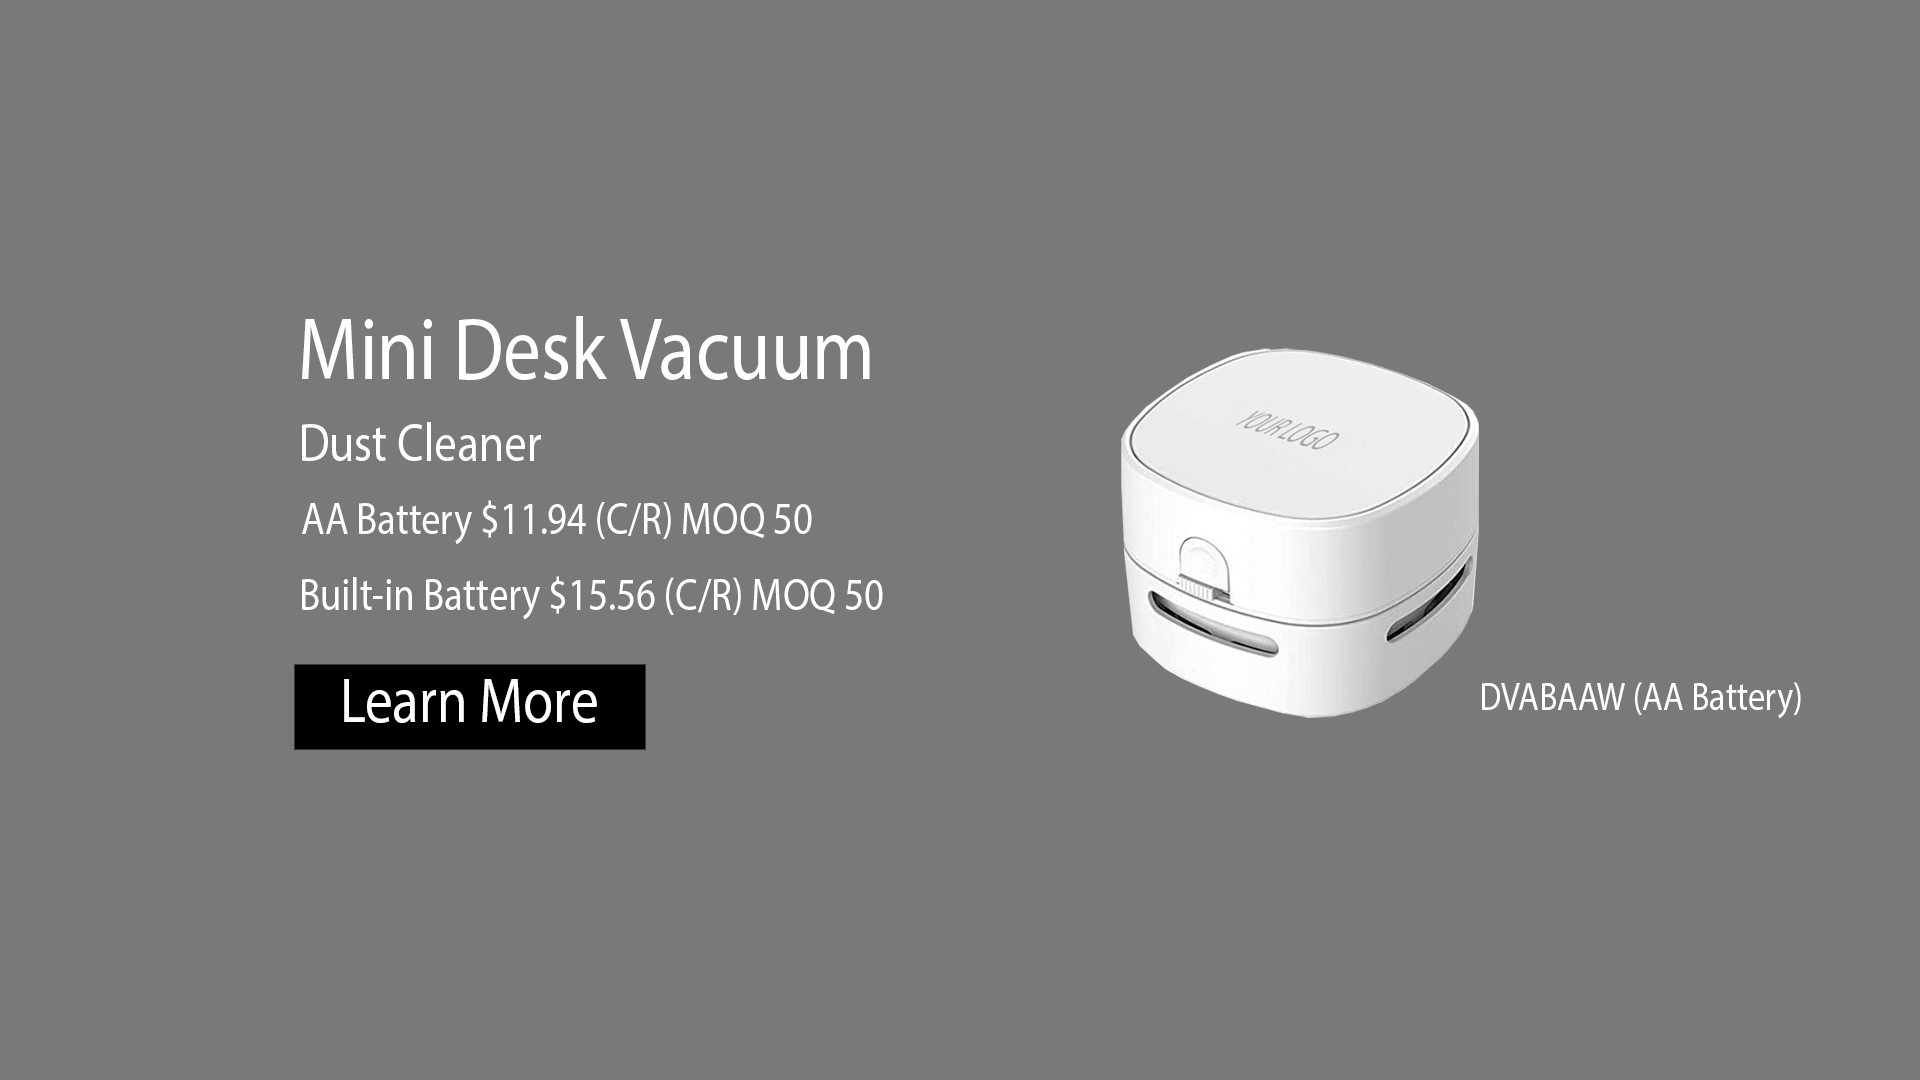 The Desk Vacuum Dust Cleaner for desk, office, work space, or school. Mini Dust Cleaner for everyone.